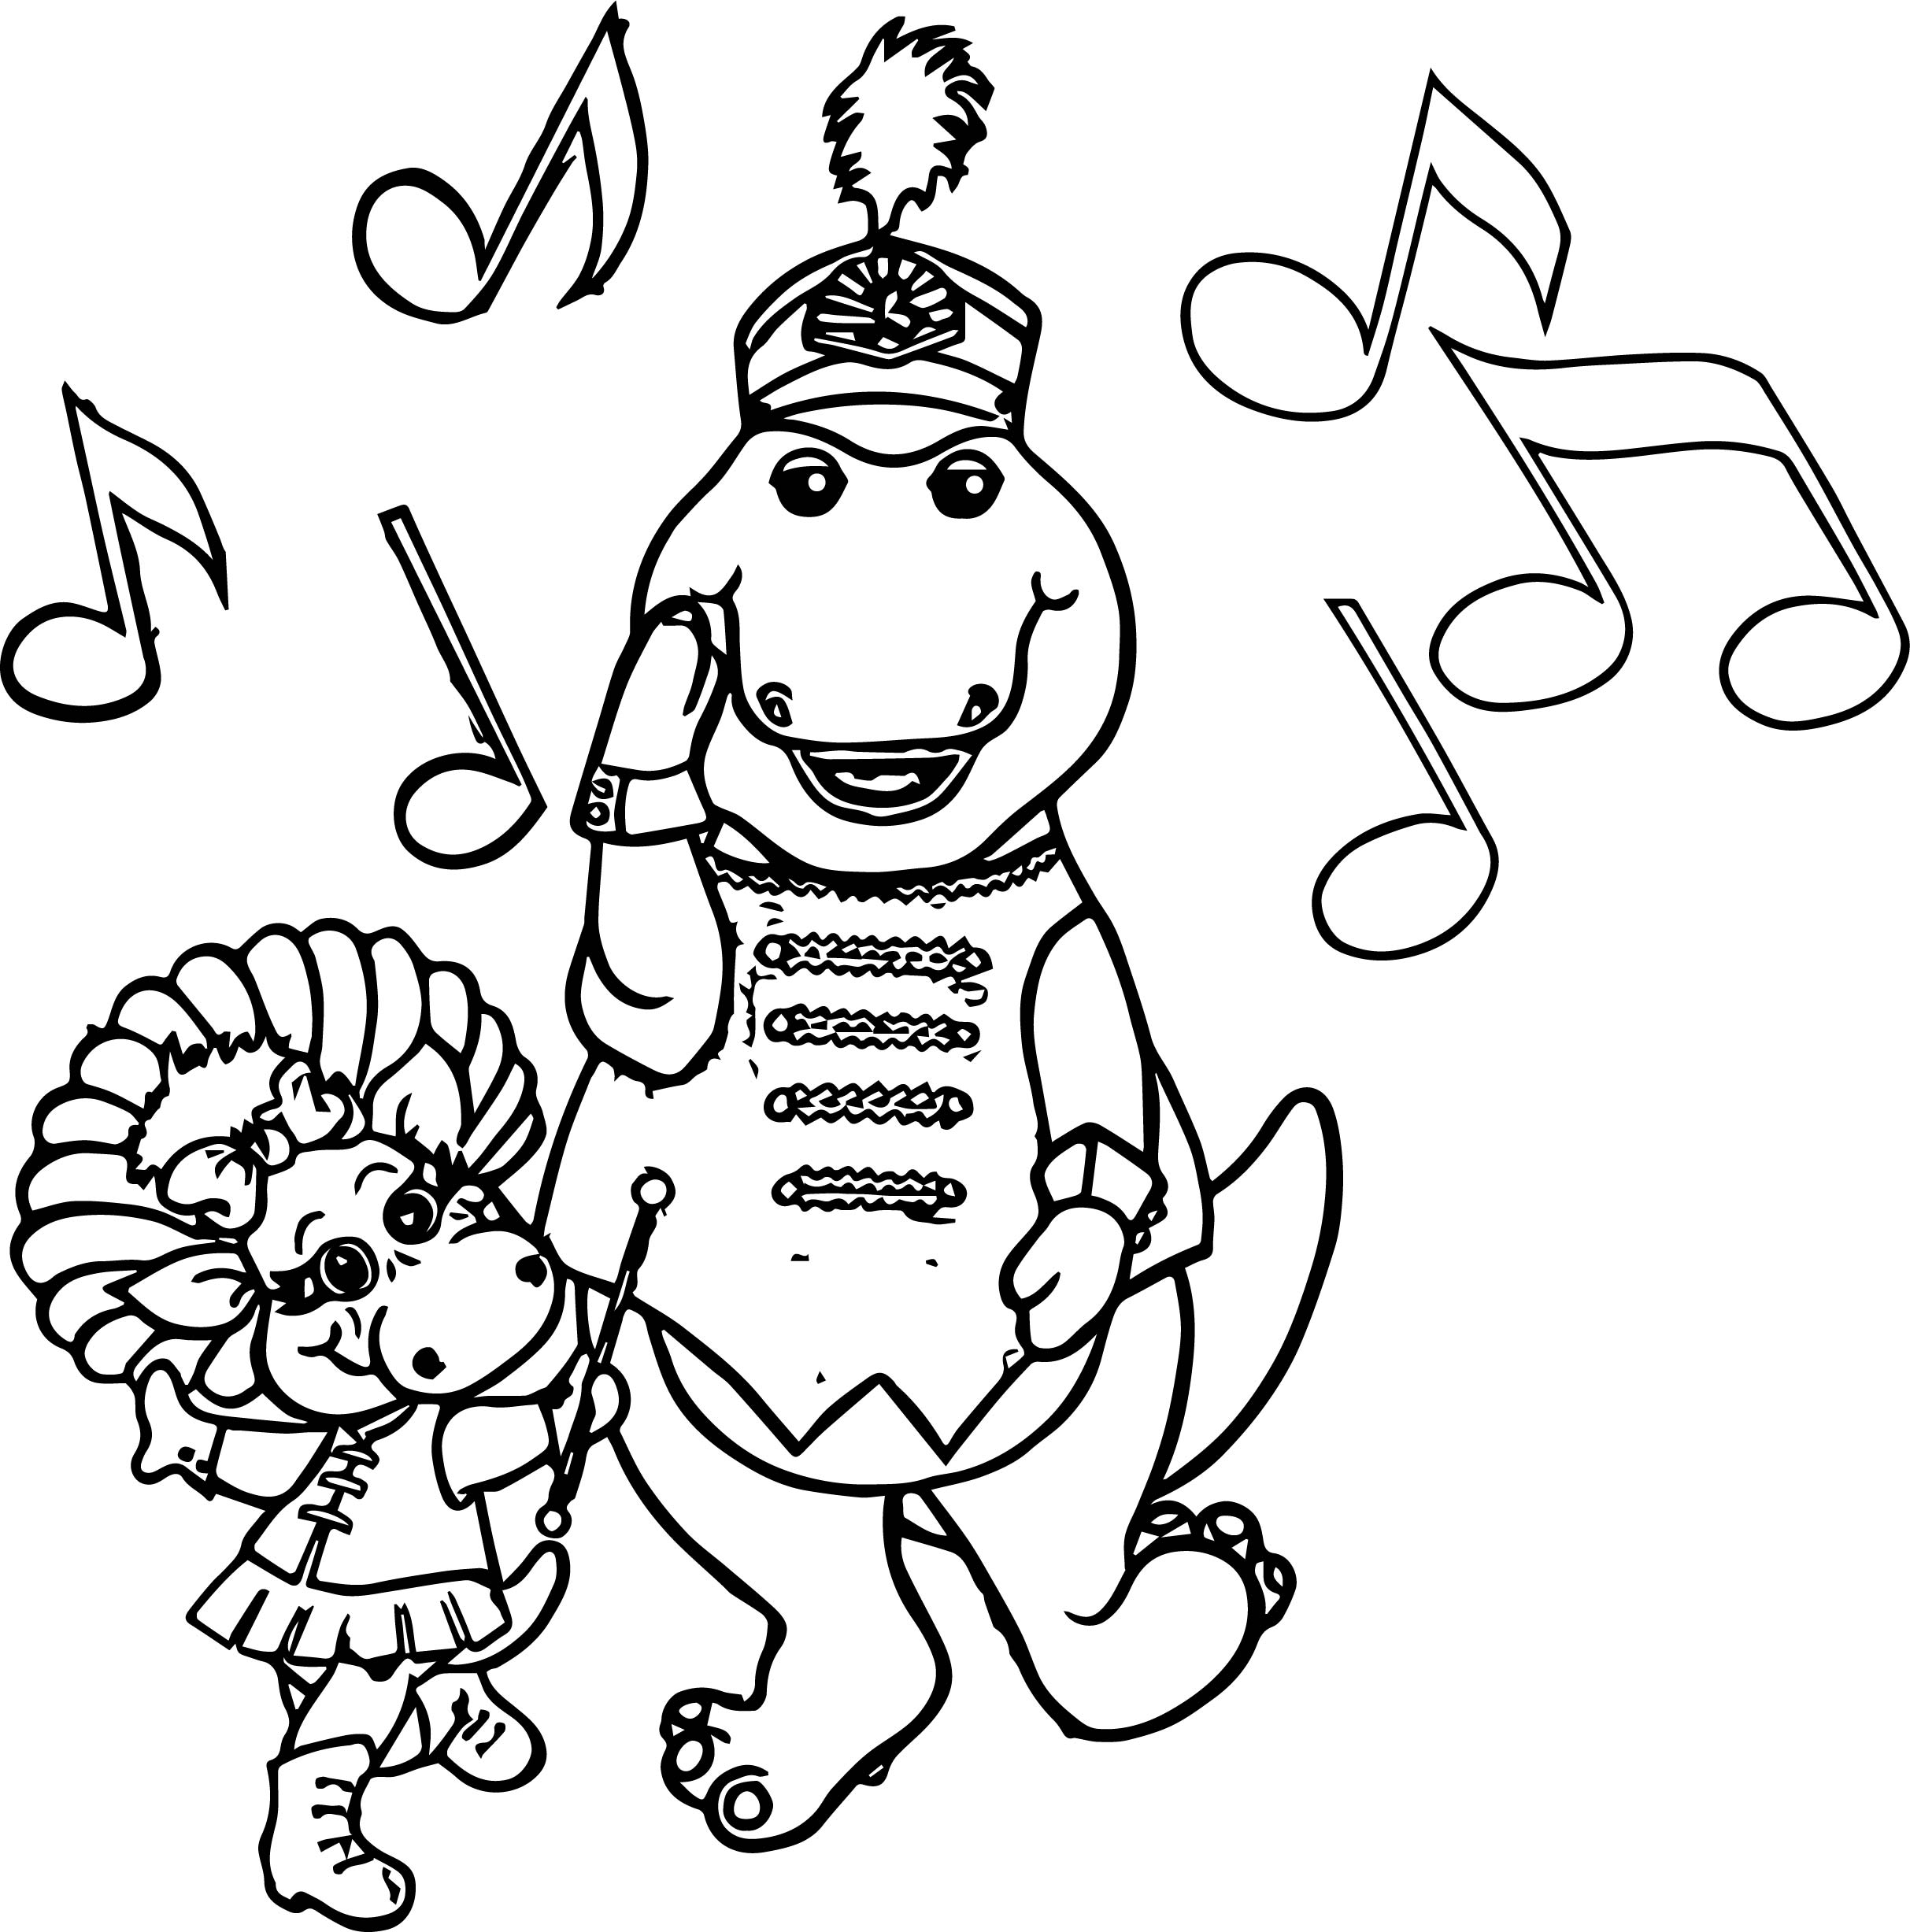 Barney And Baby Bop March In A Parade Coloring Page